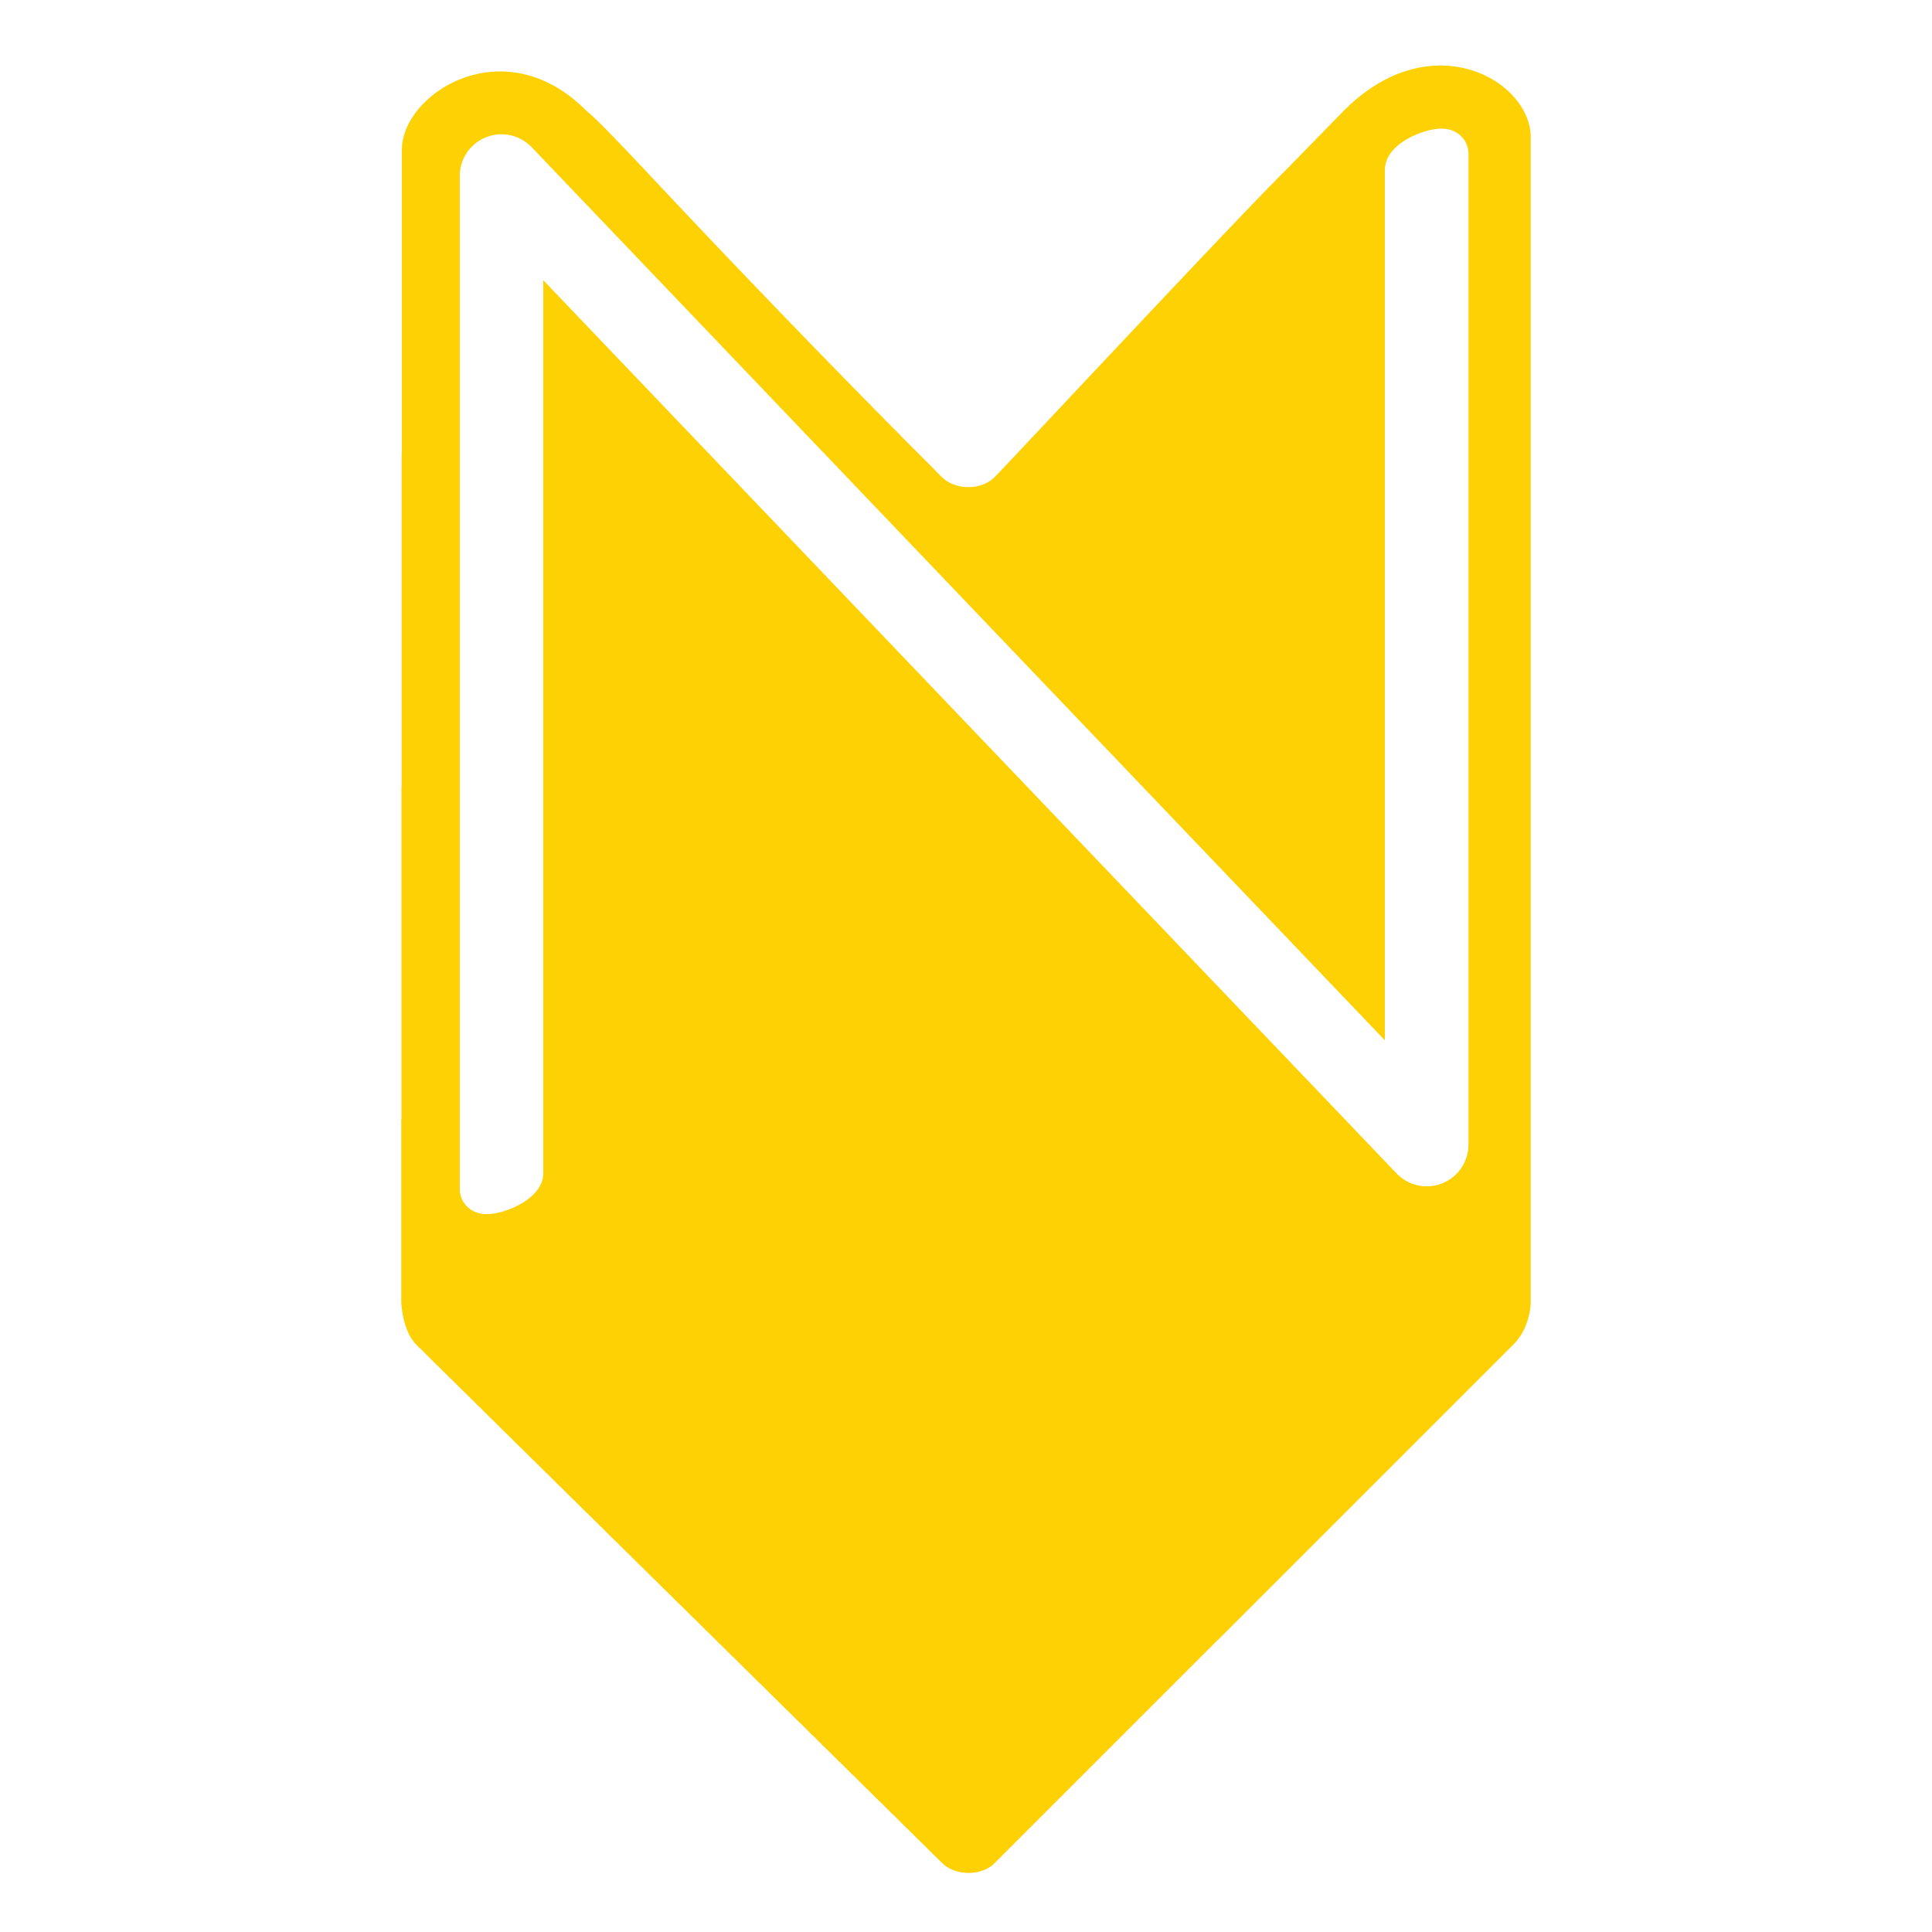 The Nearstory logo is a yellow uppercase 'N' within an elongated brown chevron. The chevron is pointed down like an arrow to symbolize a location point in which a story can be heard.